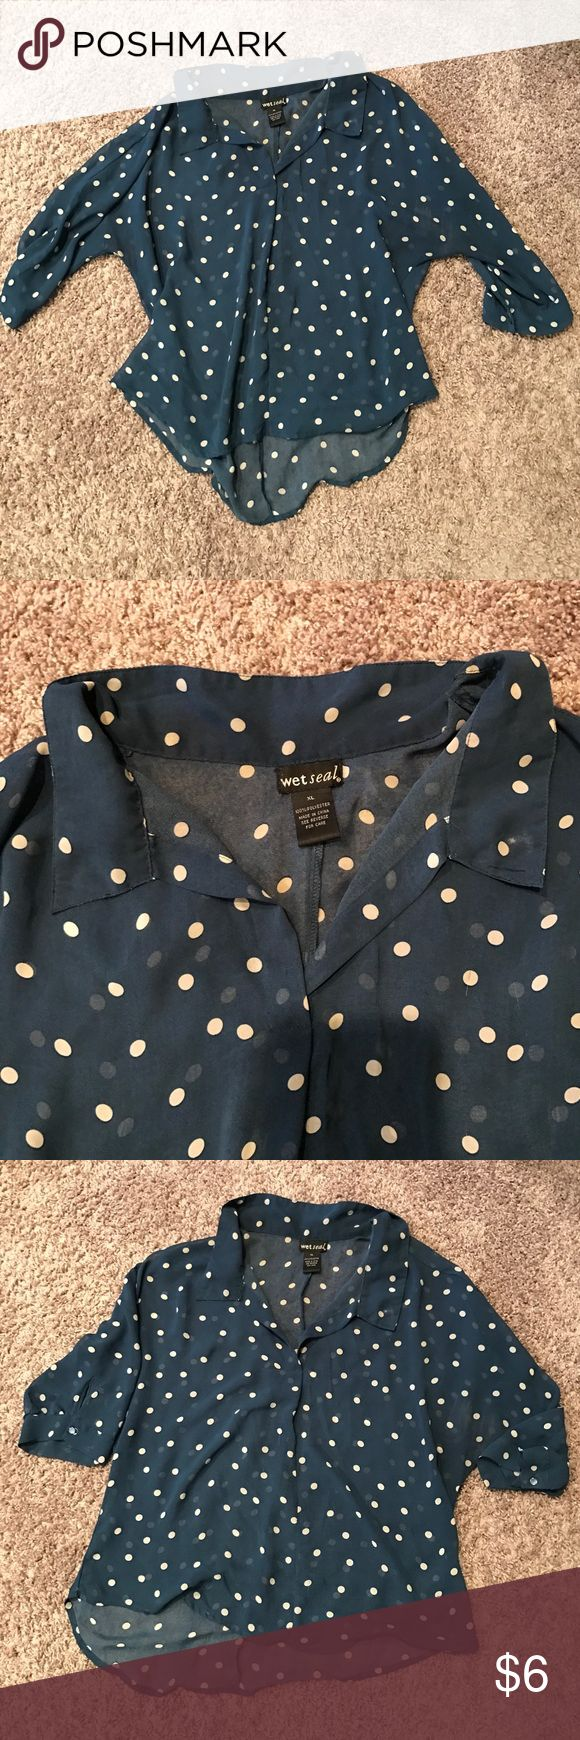 🌸NEW LISTING!🌸 Sheer Polka Dot Top Sheer navy short sleeve top with polka dots.Has a slight v neck and a collar. Button detailing on the sleeves. Size XL. Tops Blouses